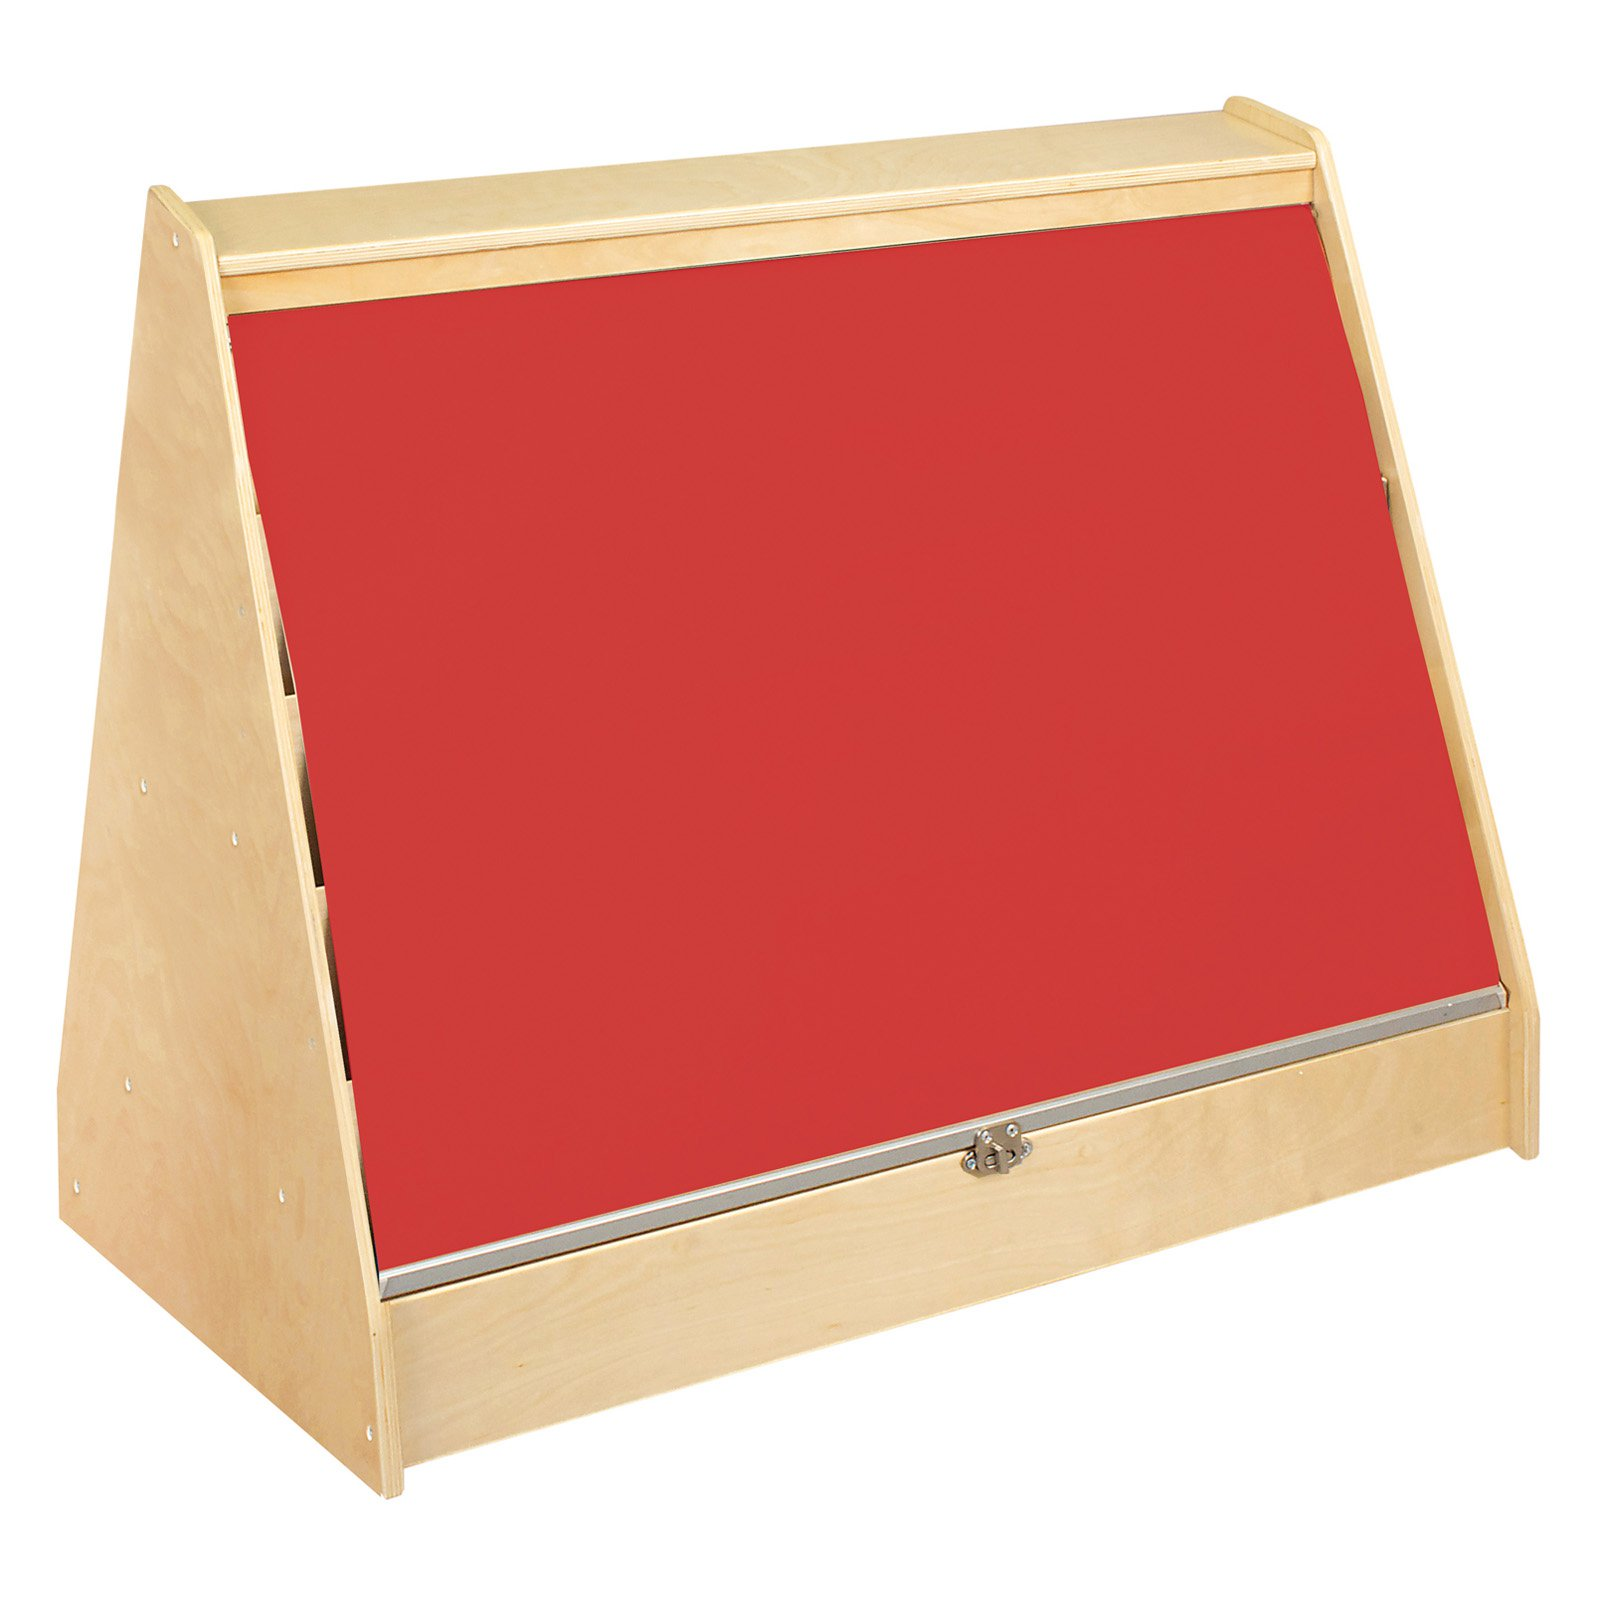 Guidecraft Hideaway Double Sided Book Browser - Red